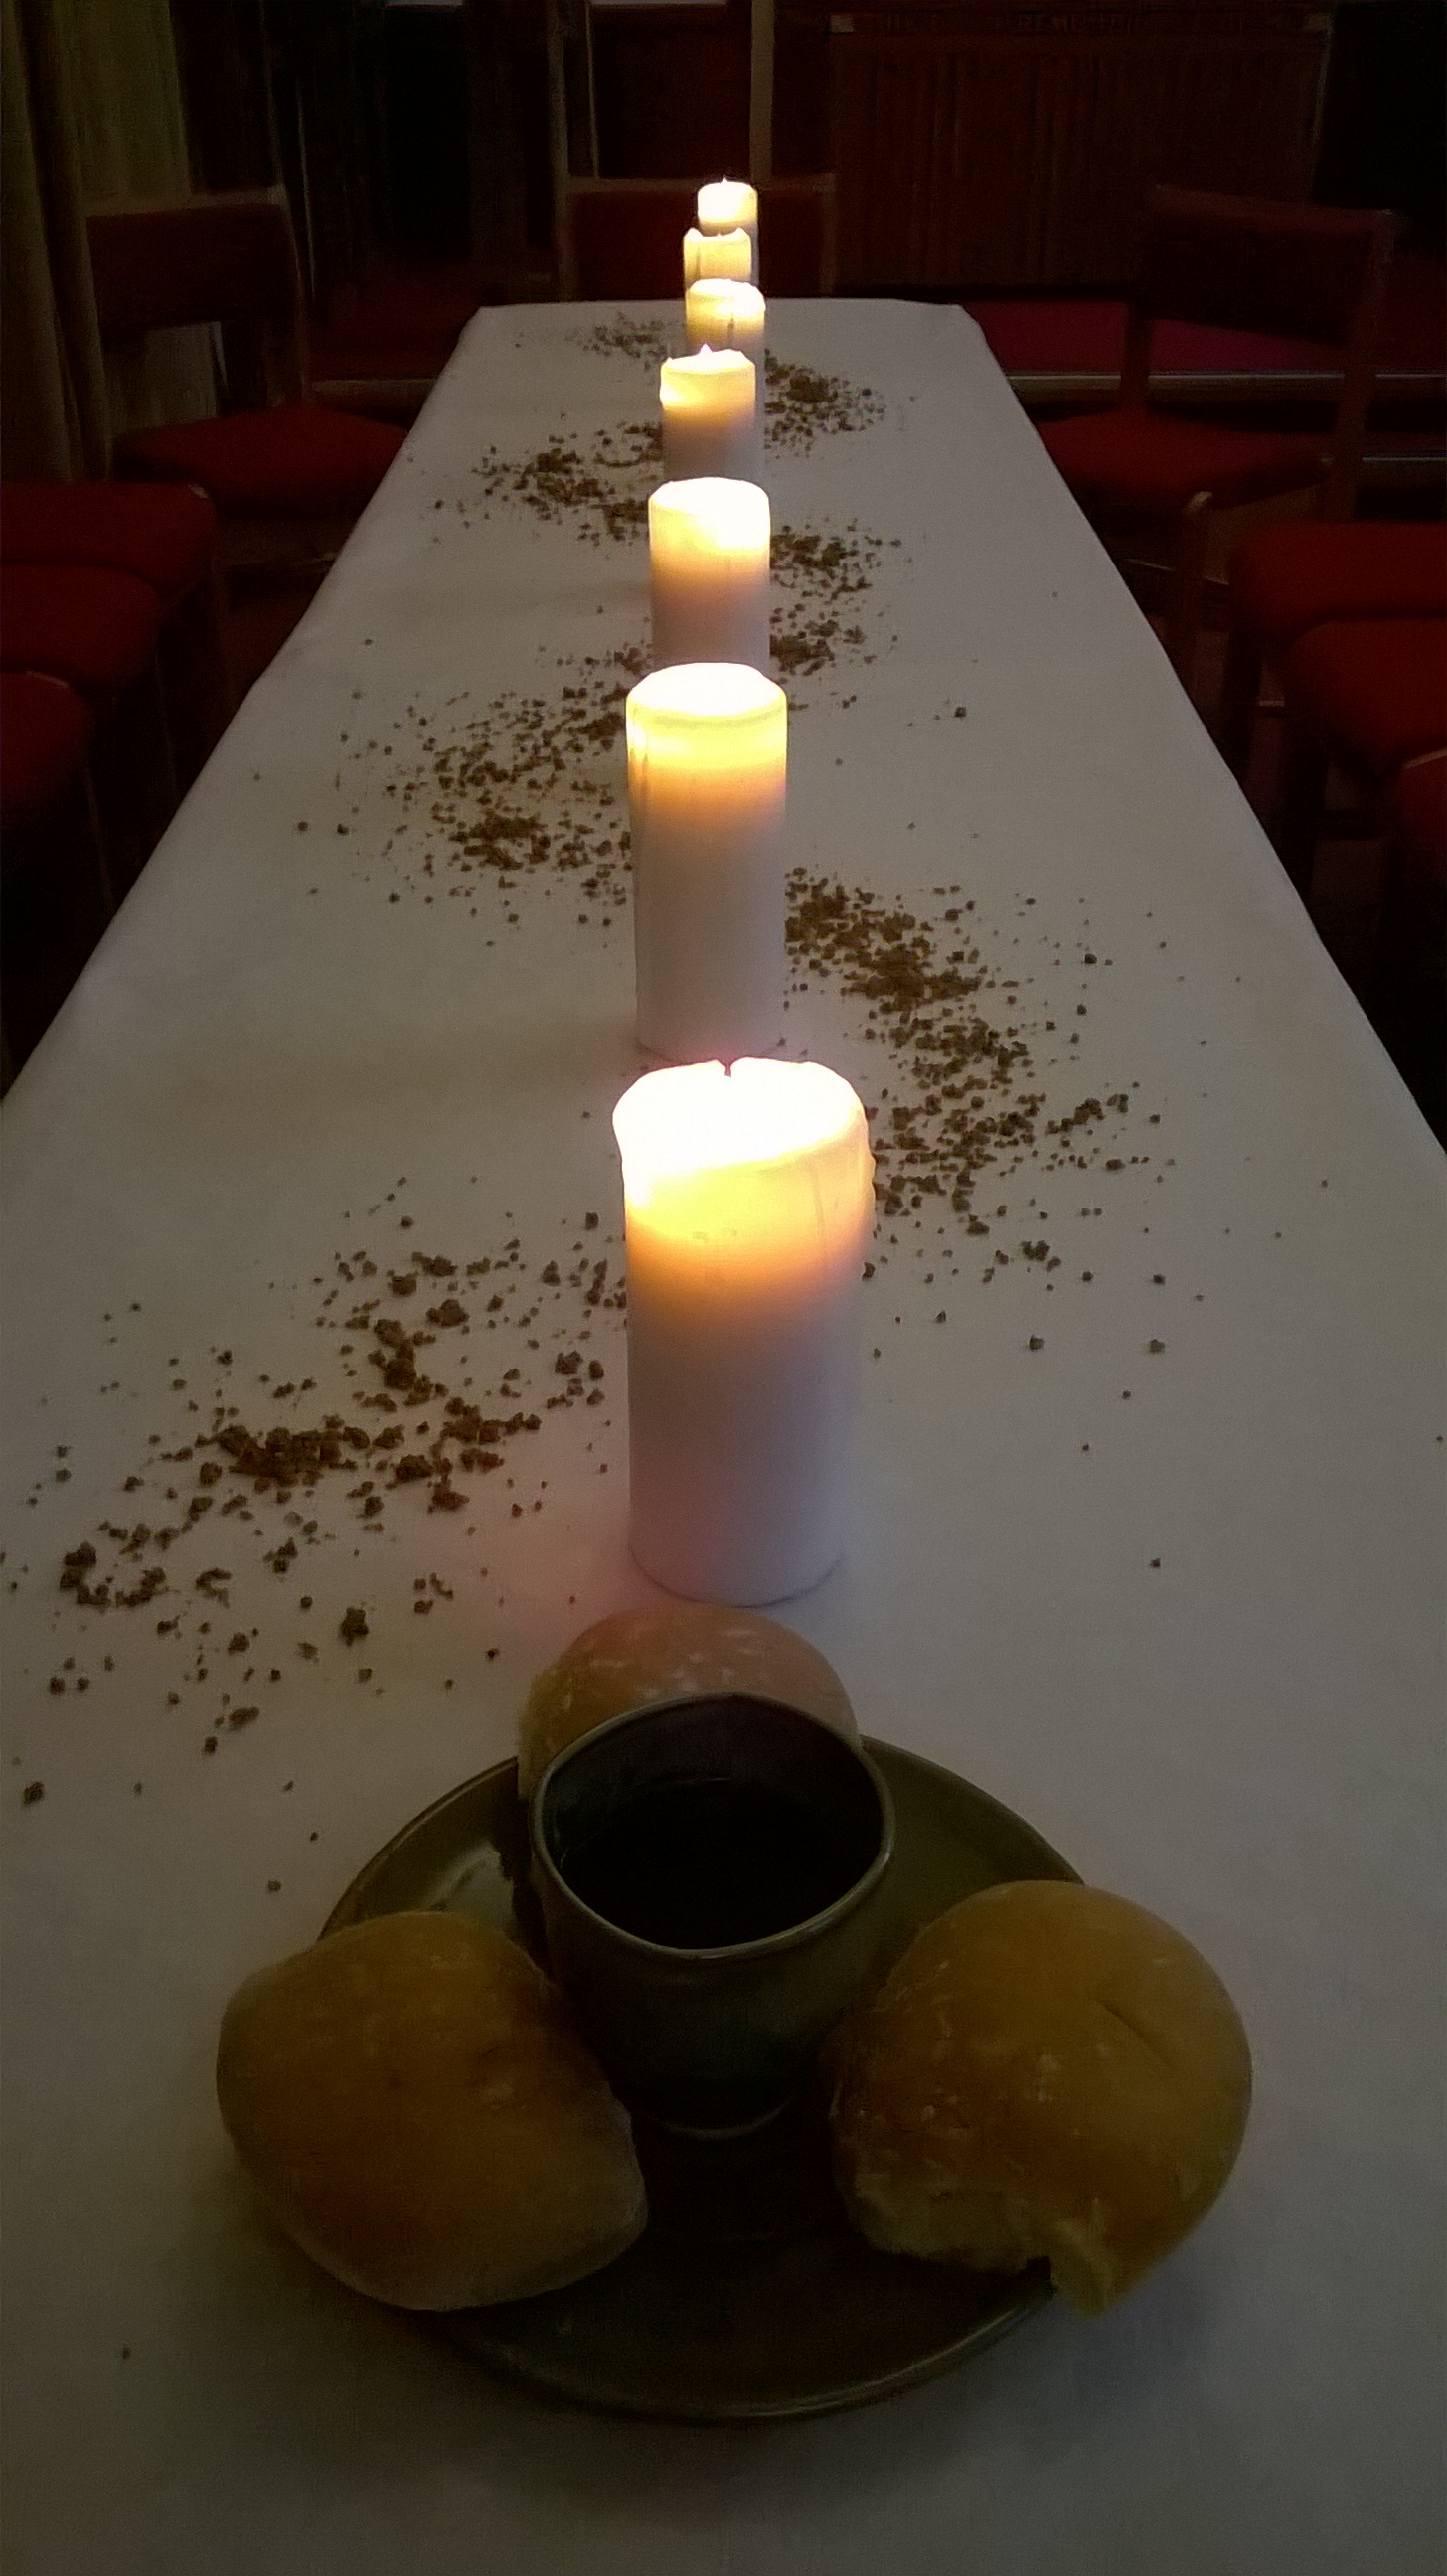 Evening Communion